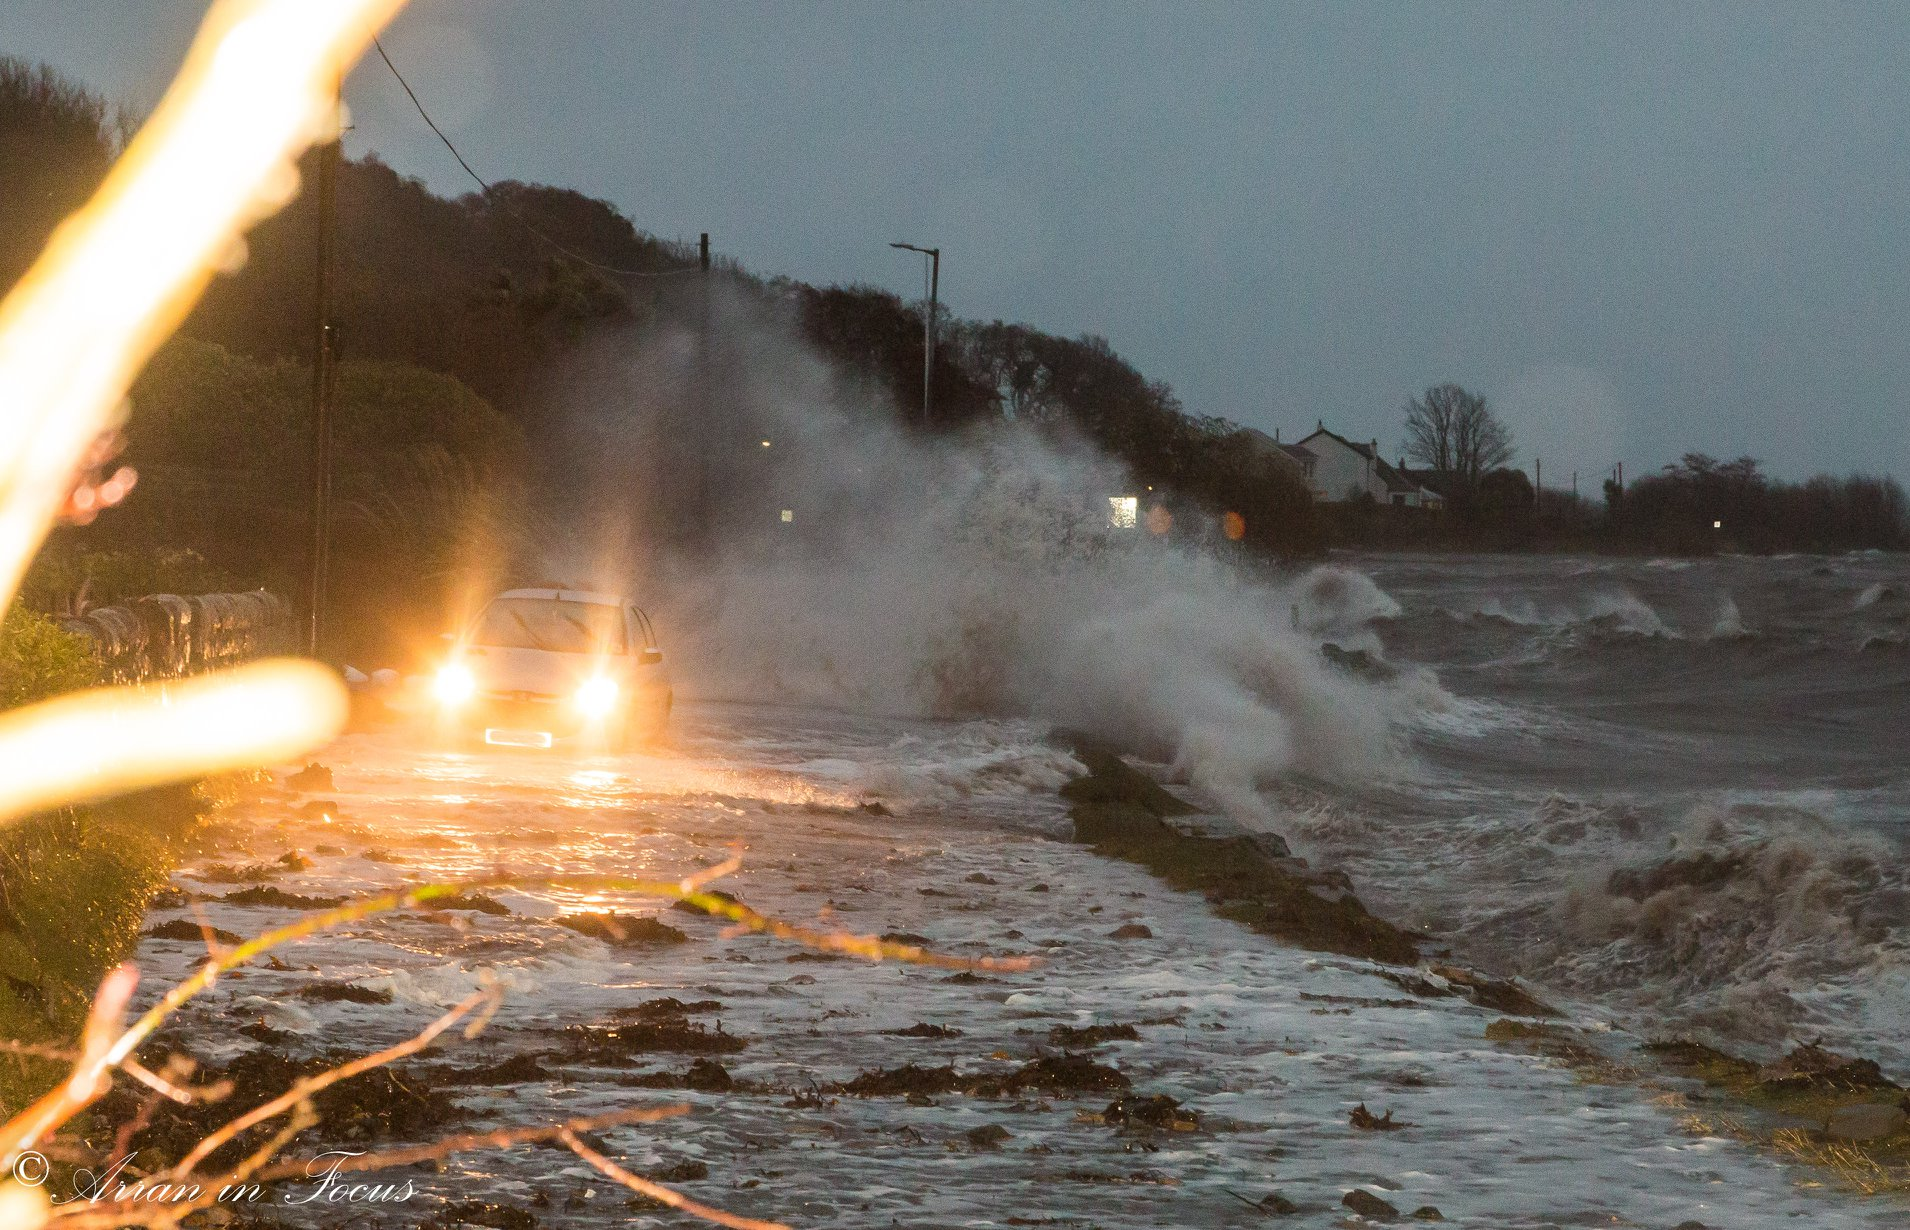 A car avoids surging waves on the Isle of Arran. (Arran in Focus Facebook Page.)